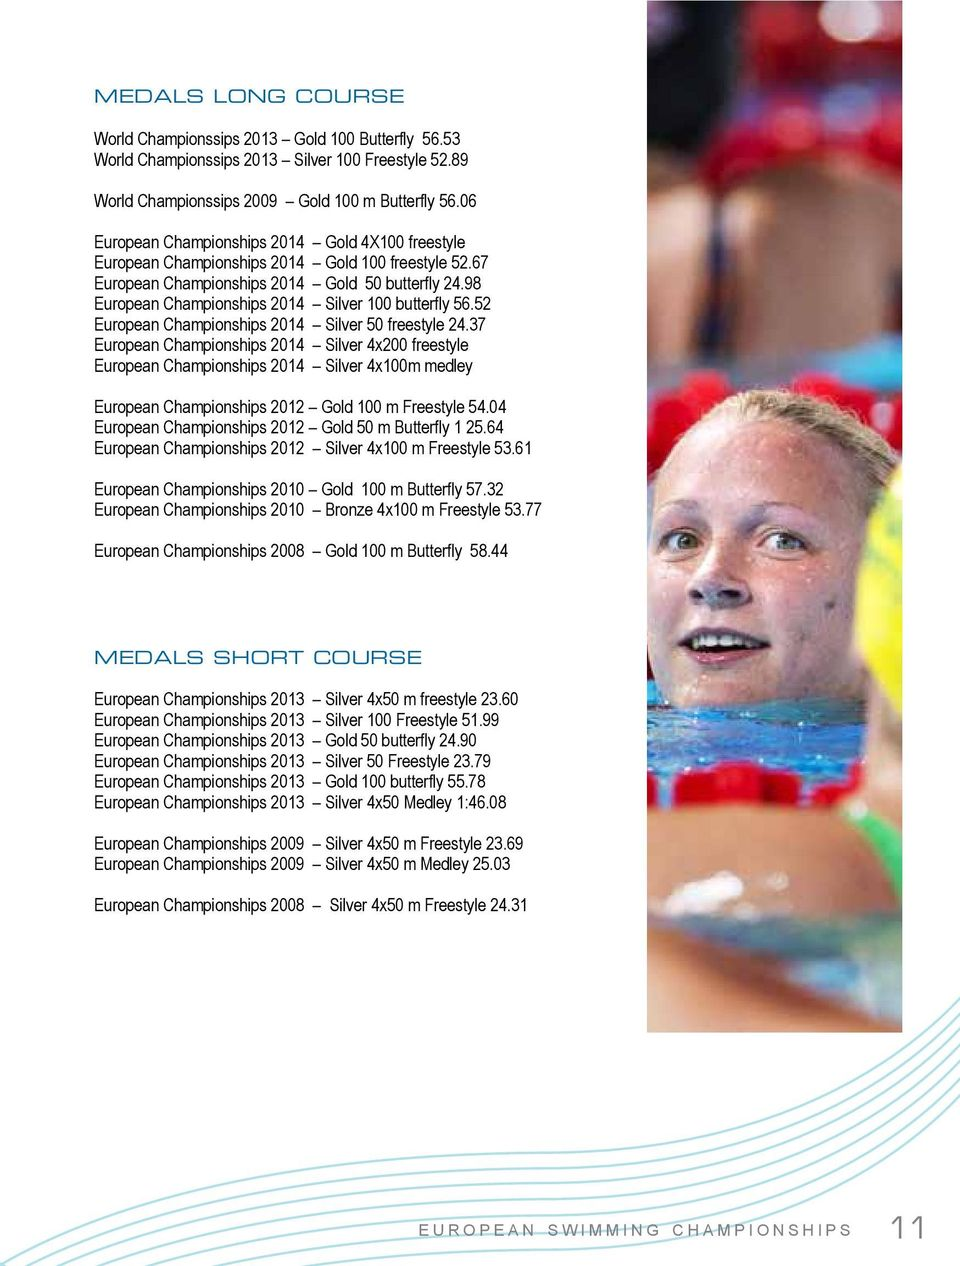 98 European Championships 2014 Silver 100 butterfly 56.52 European Championships 2014 Silver 50 freestyle 24.